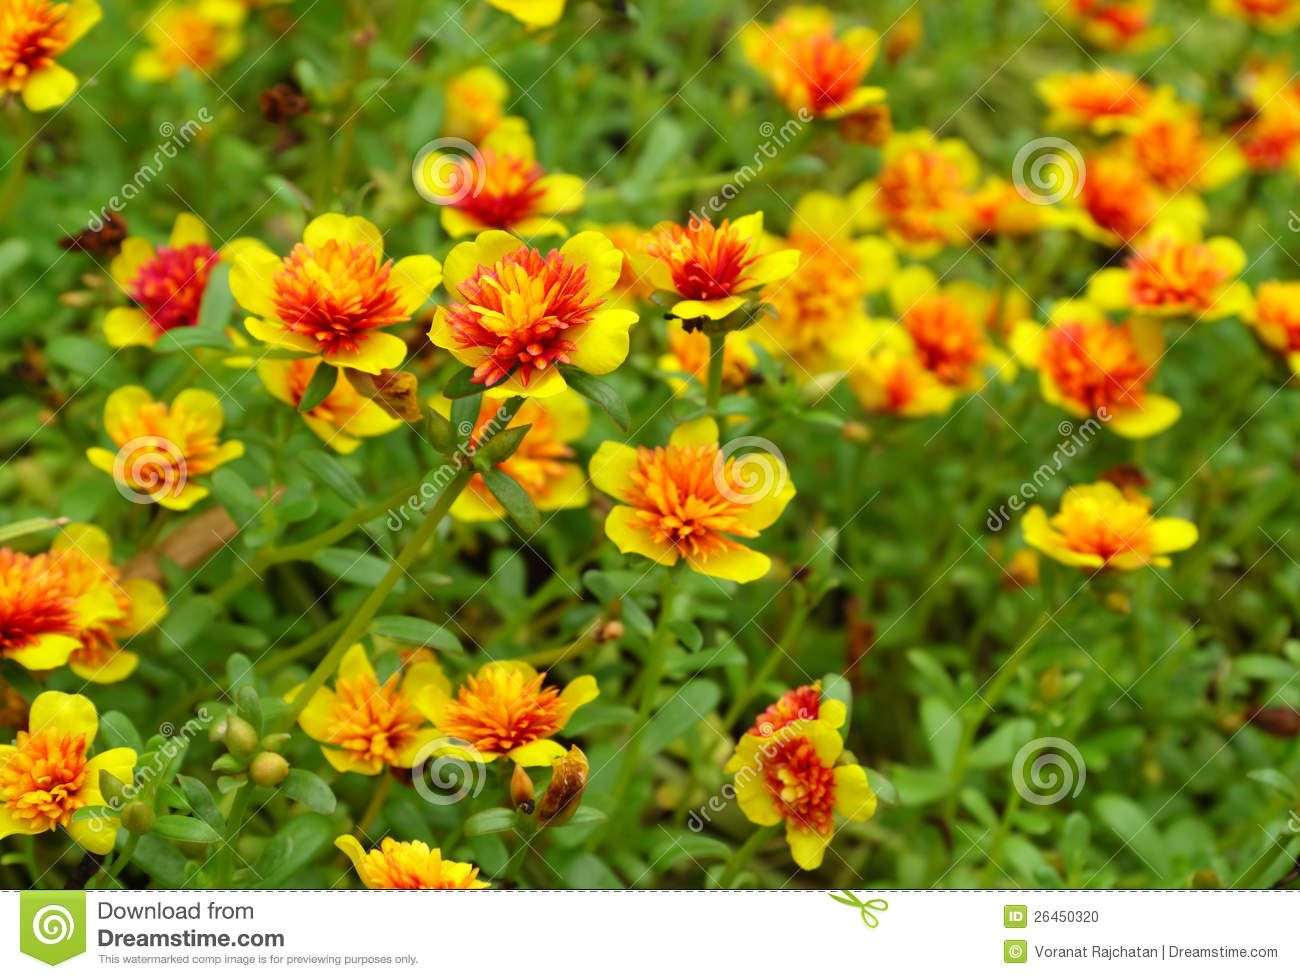 Purslane  Yellow + Orange  Good Ground Cover If Needed, Easy To Grow, Es In Yellow, Apricot And An Orange As Well Perfect As A Low Plant In A  Pot,